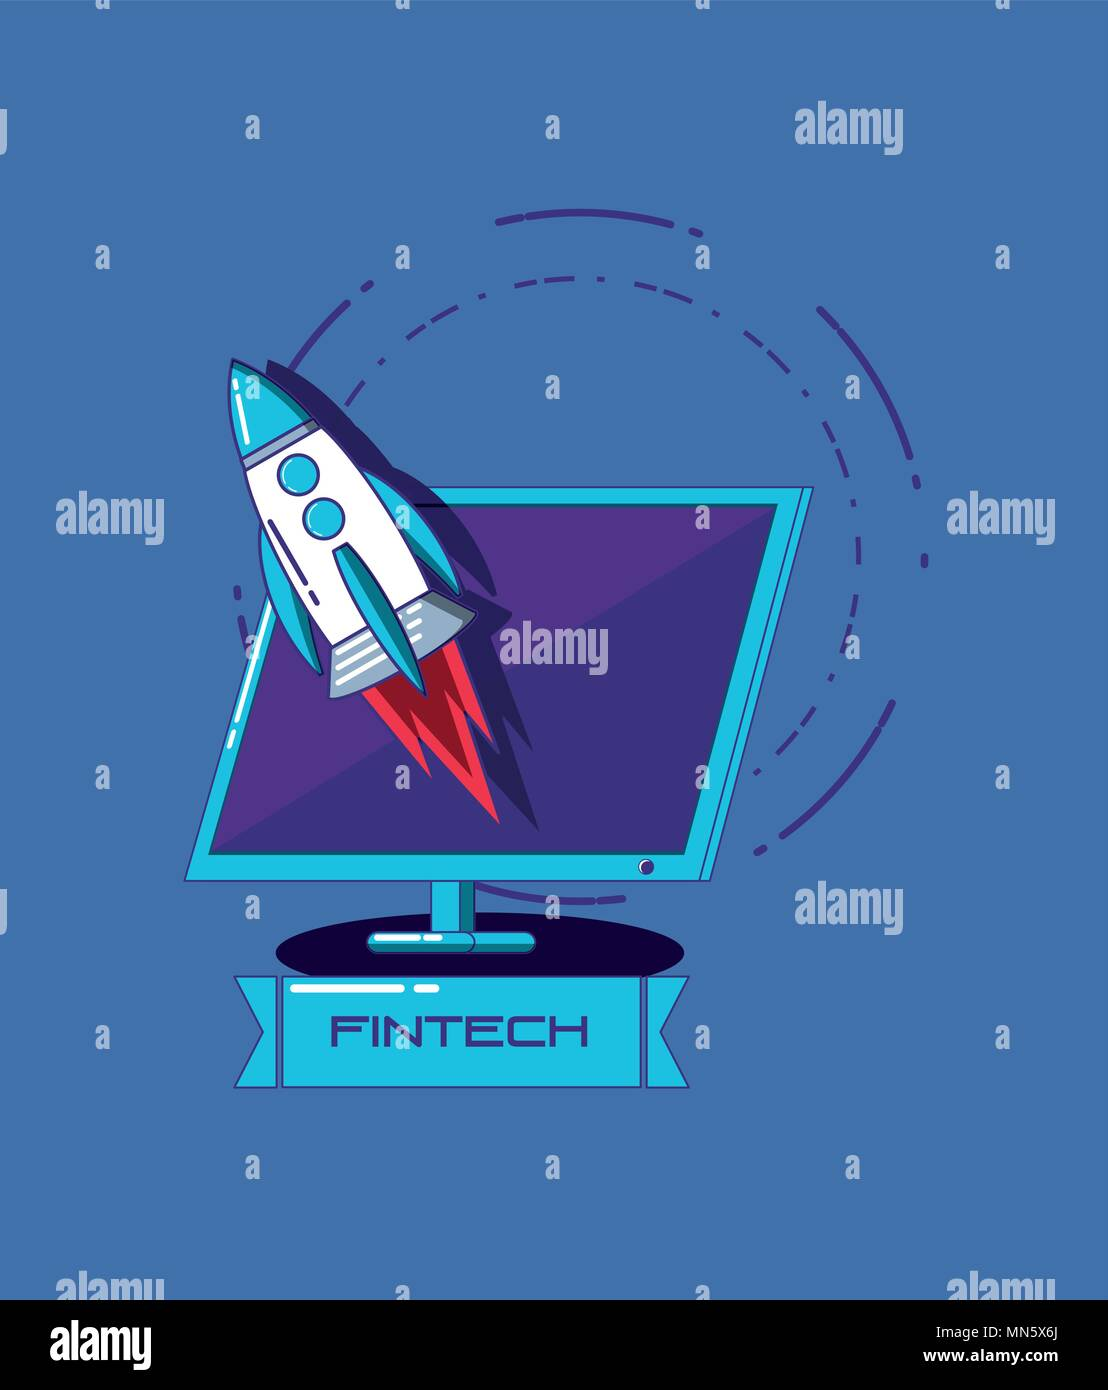 Fintech concept with computer and rocket over blue background, vector illustration - Stock Image